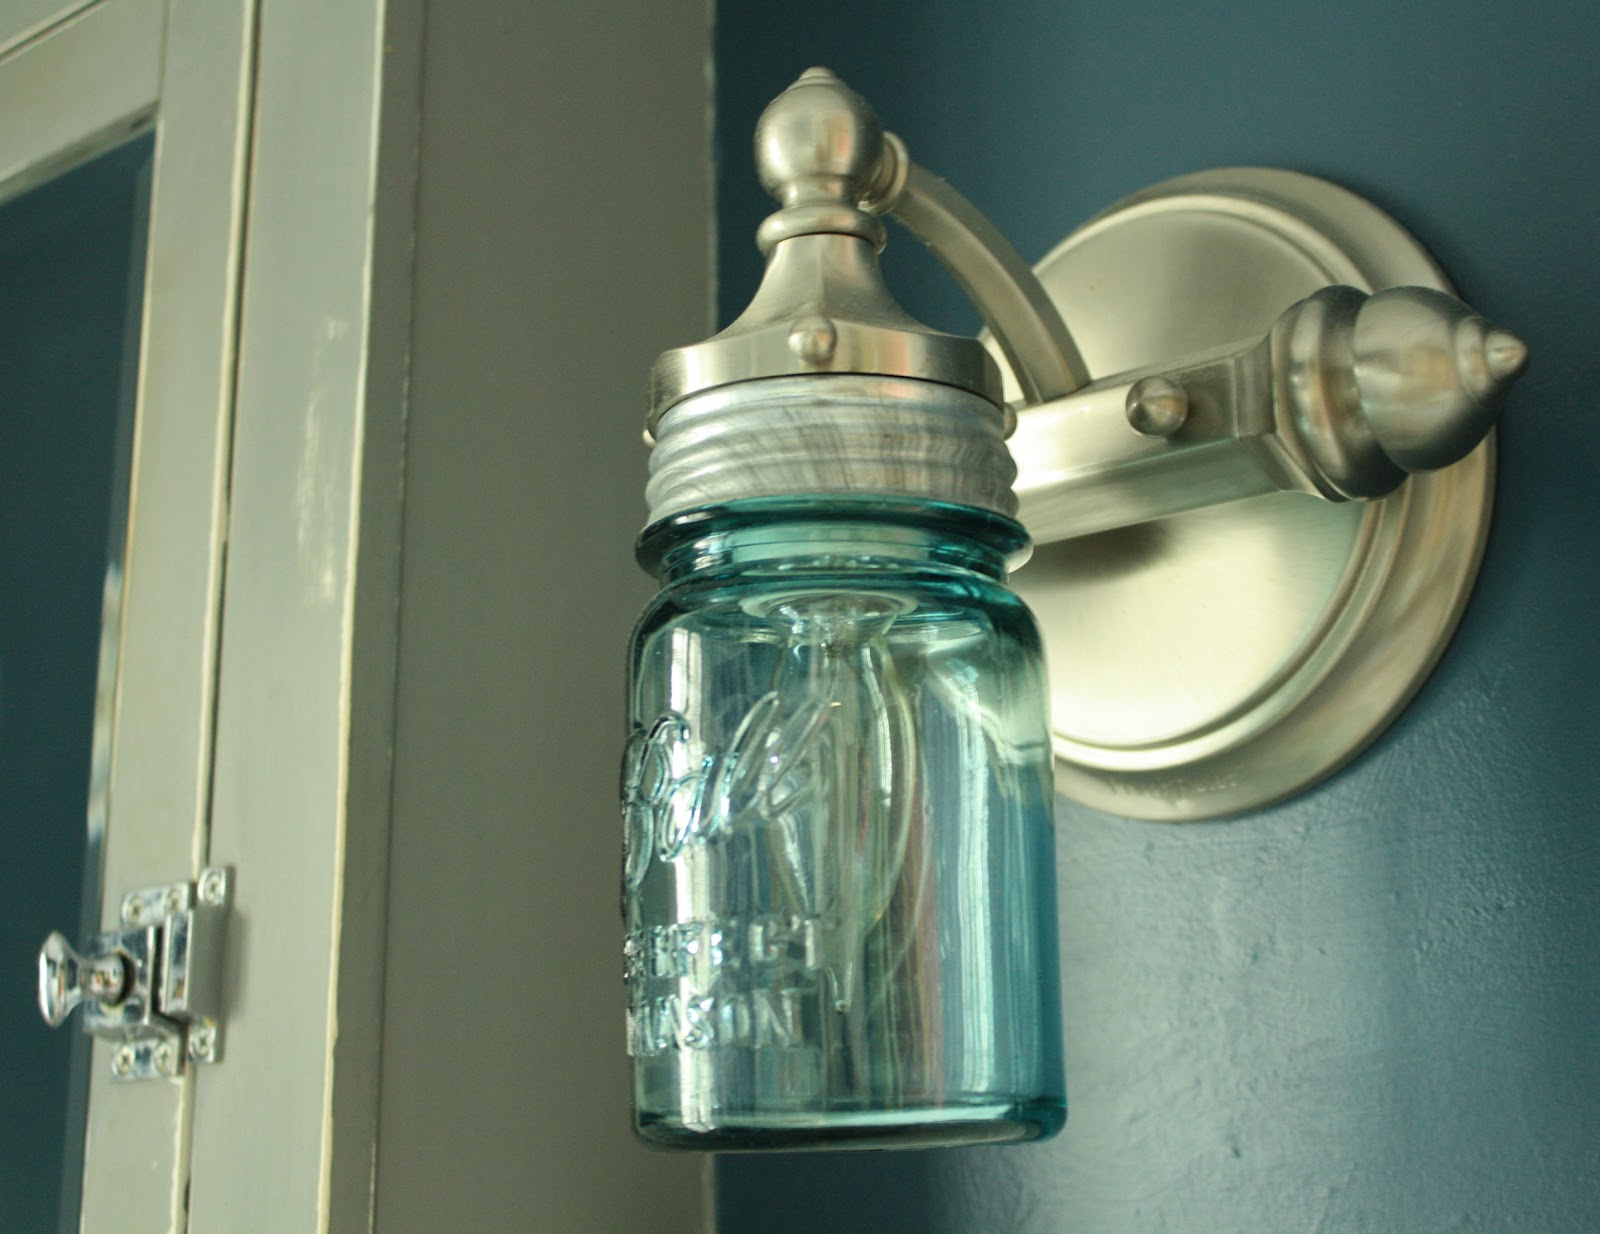 diy fixtures mason jar lighting picutre gallery diy mason jar bathroom lights build diy mason jar chandelier